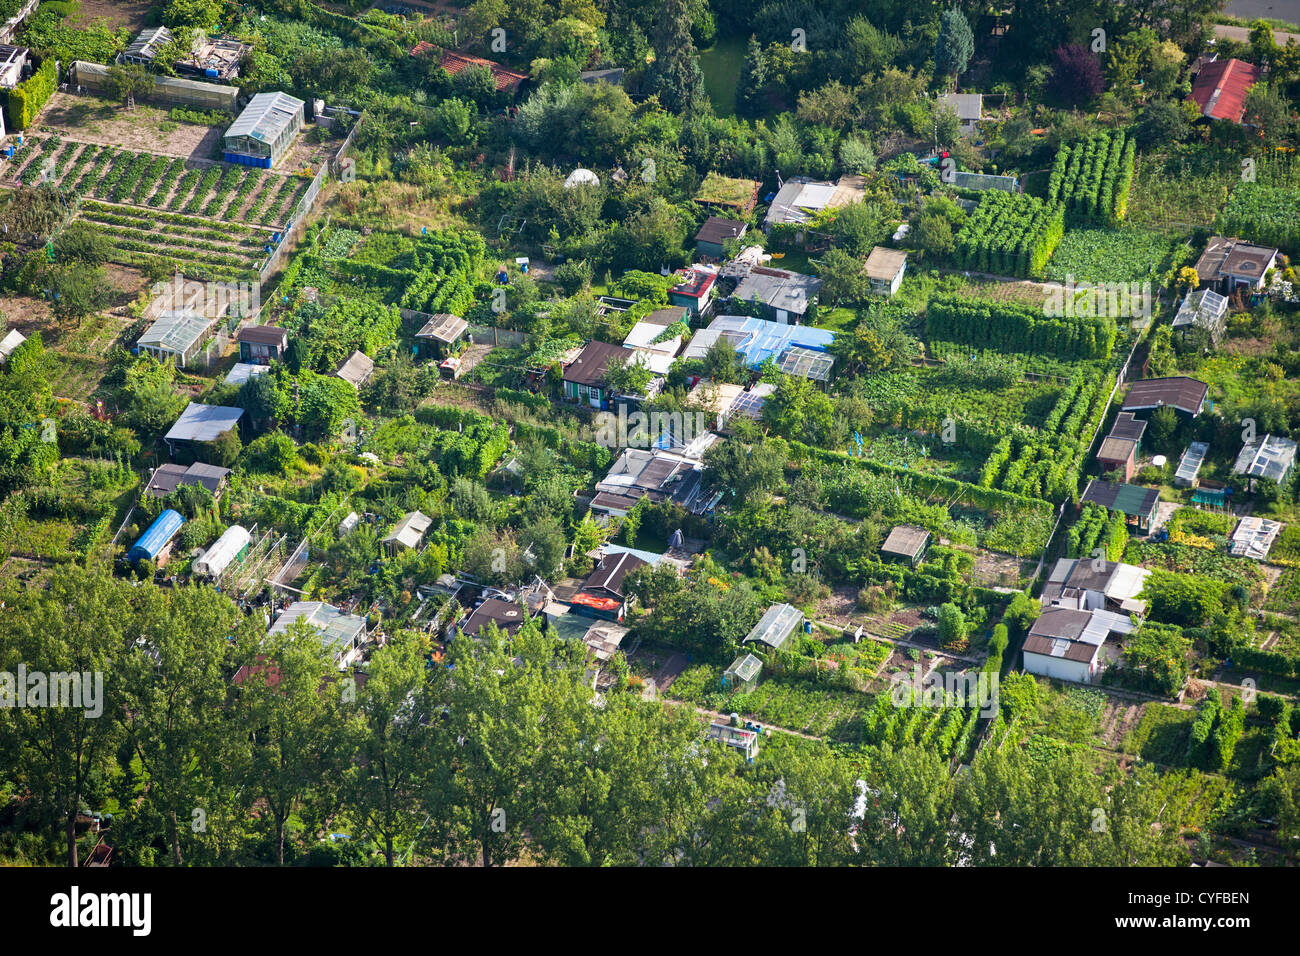 The Netherlands, Oud Zuilen. Garden allotments. Aerial. - Stock Image